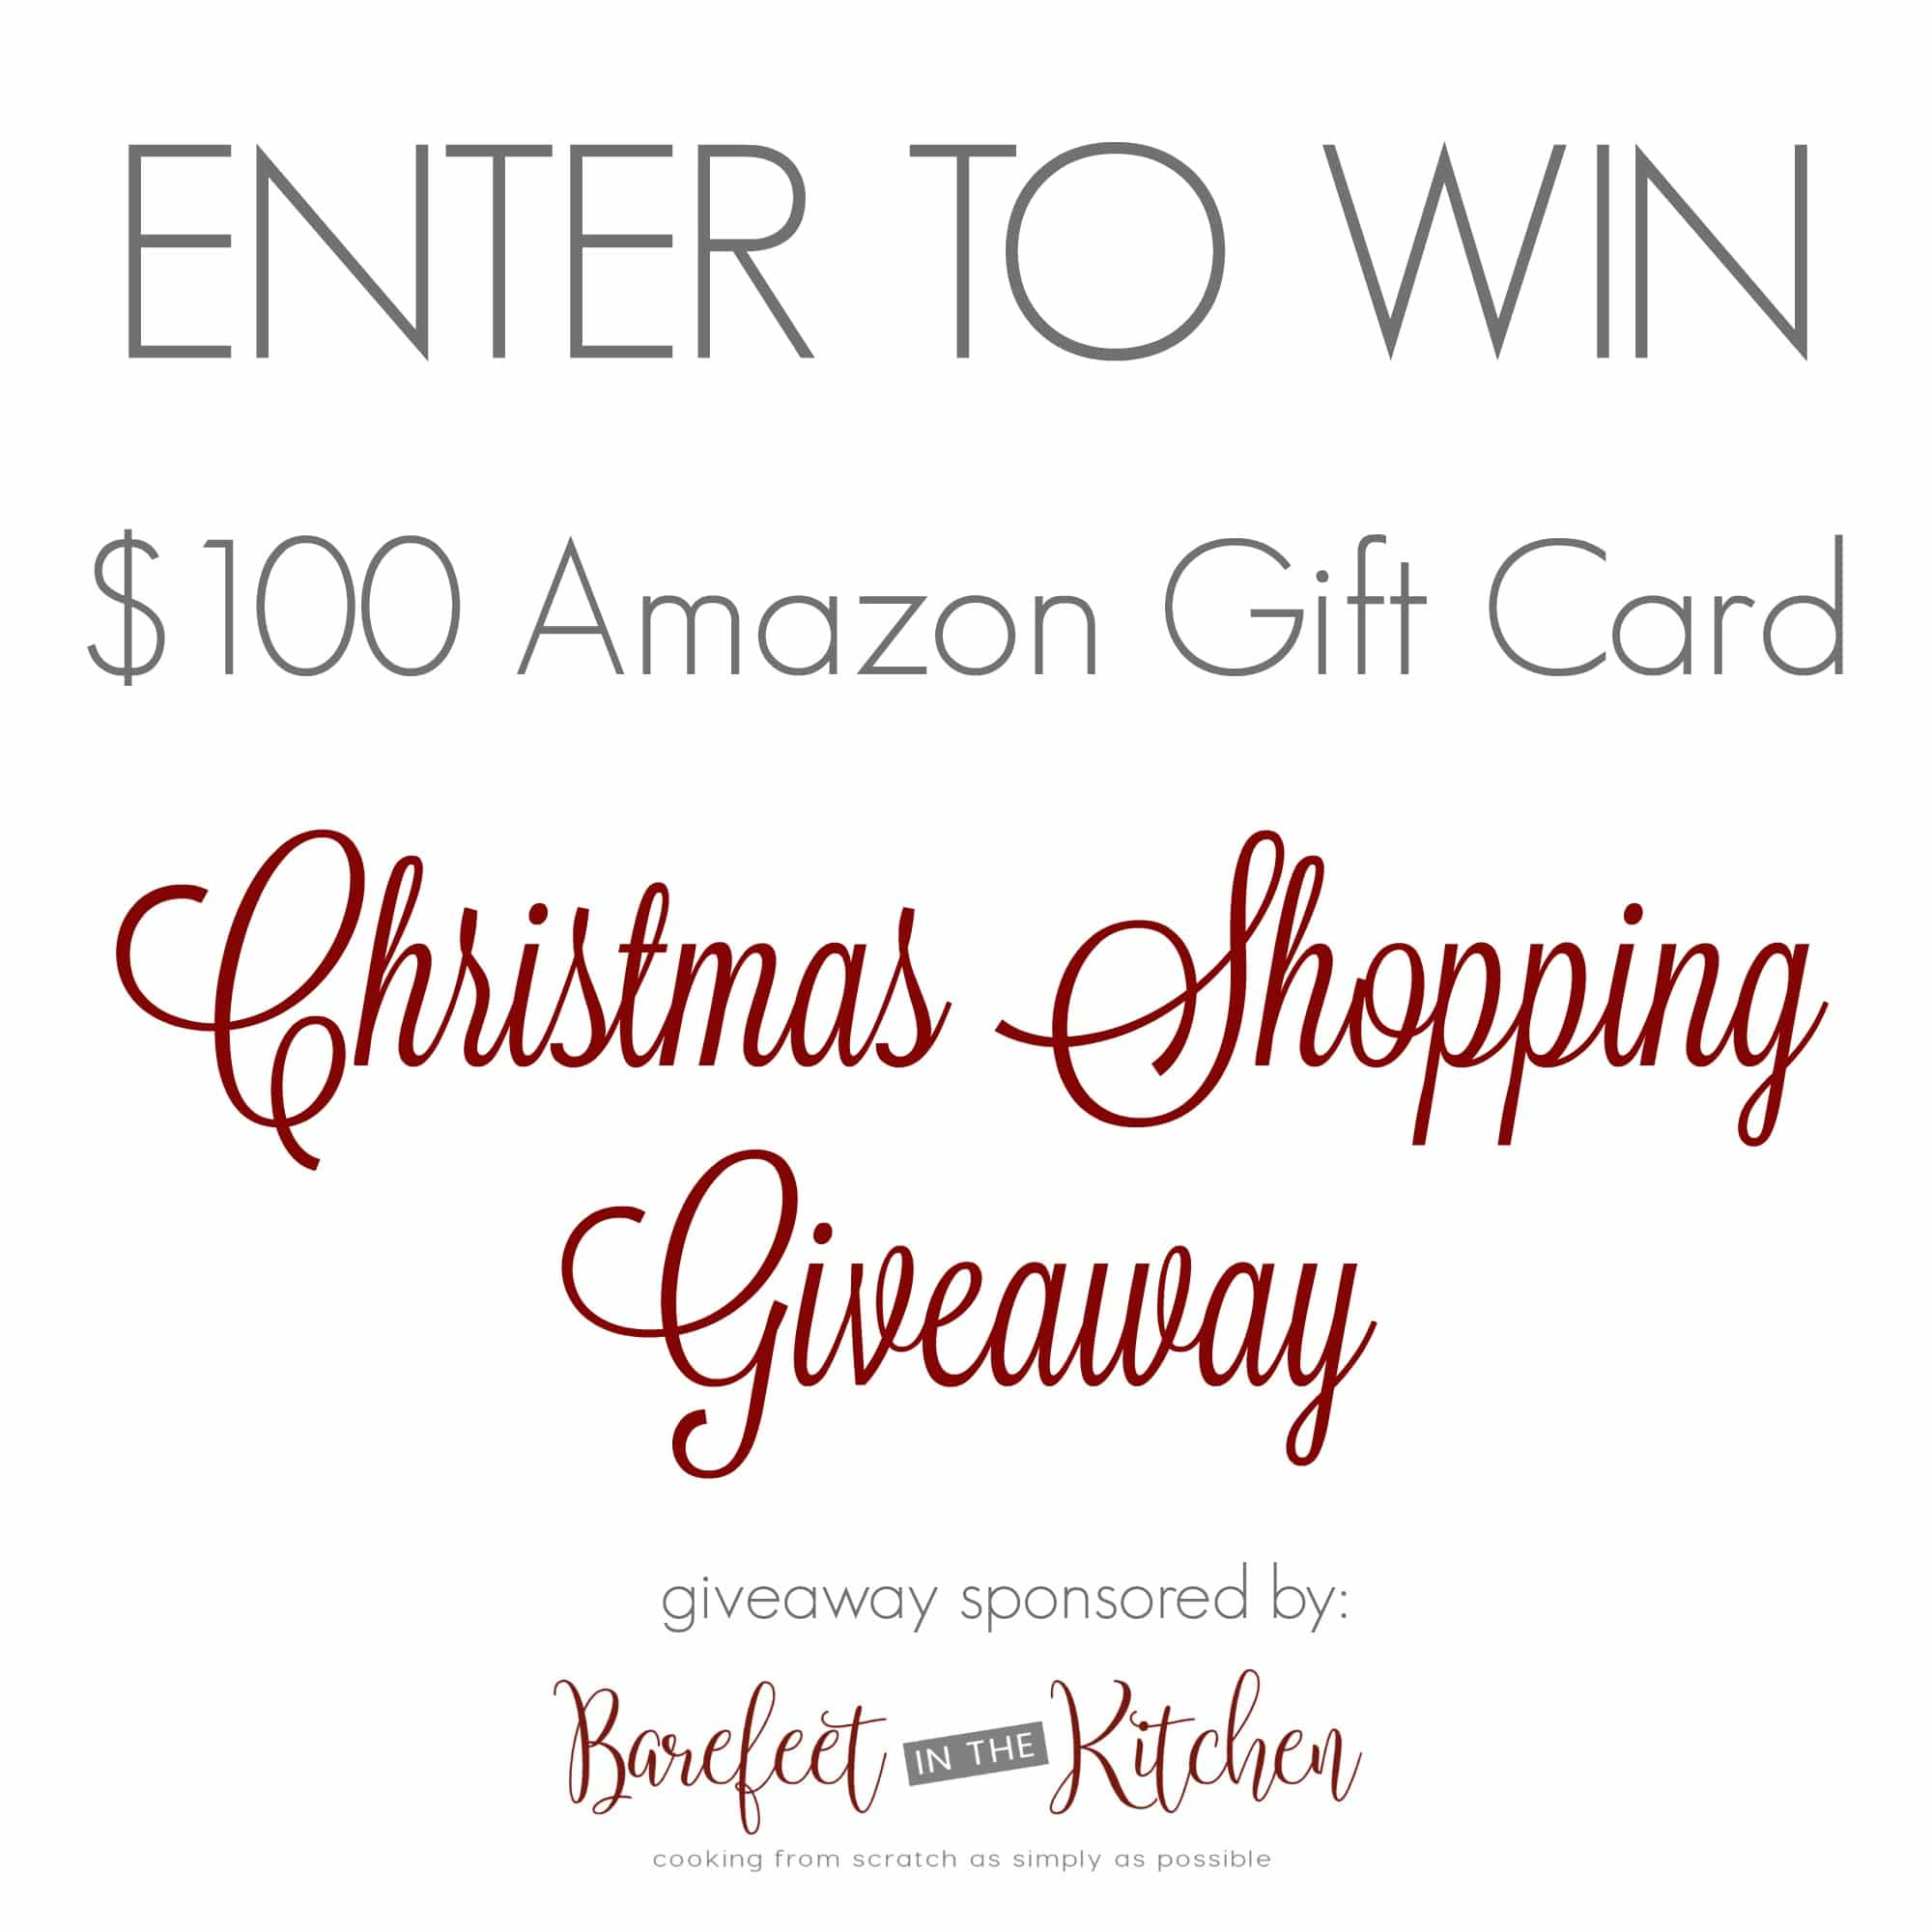 Enter to WIN one of (3) $100 Amazon Gift Cards from Barefeet In The Kitchen!